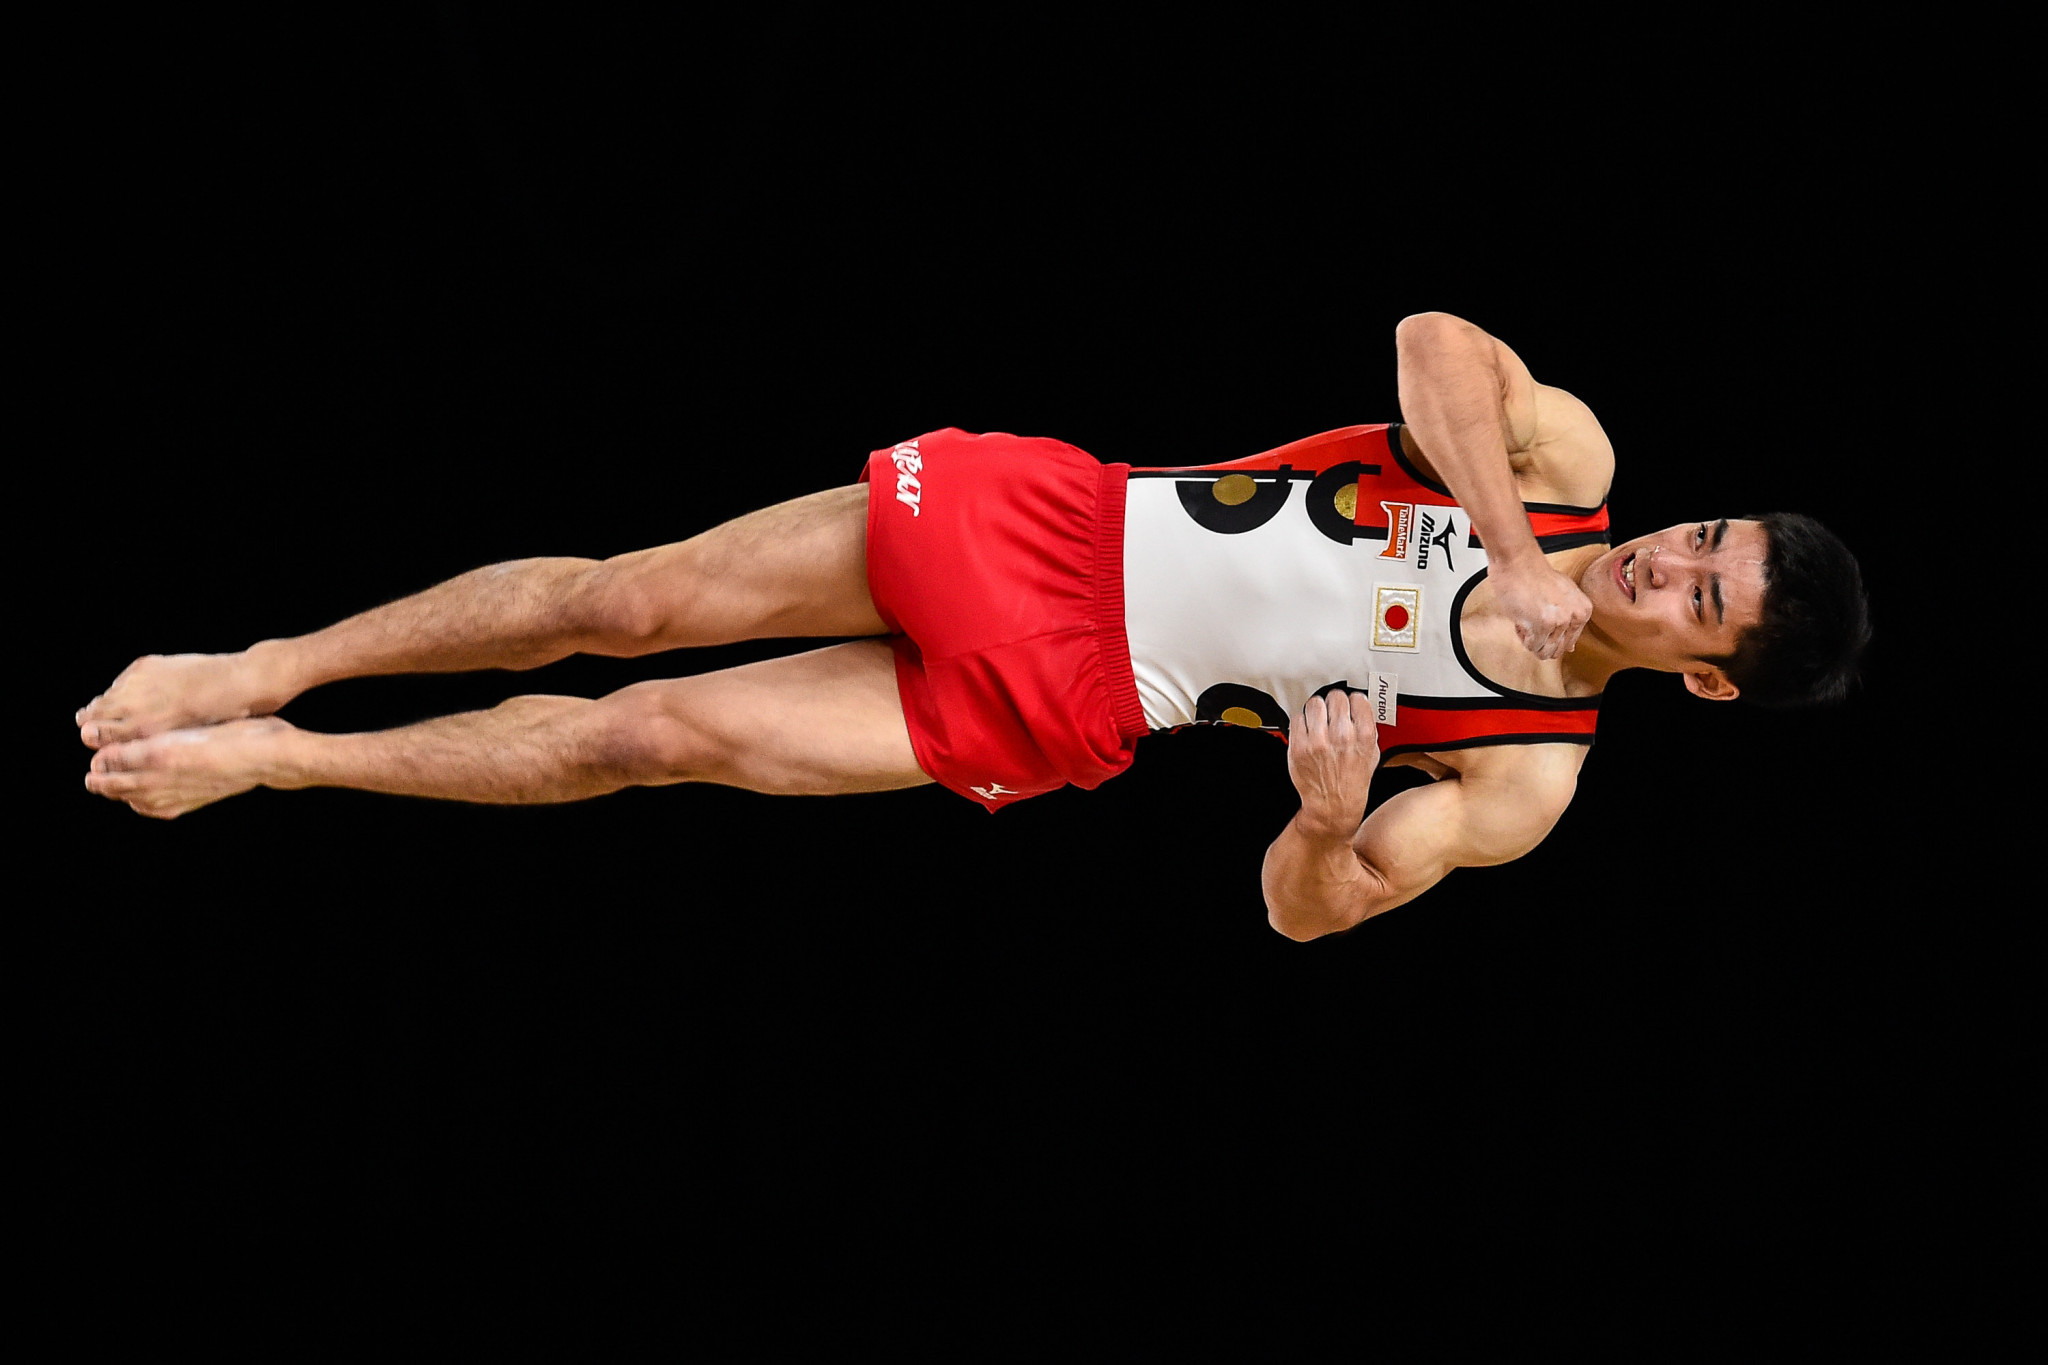 Japan's Kenzo Shirai put in another impressive performance to claim his third straight world floor title ©Getty Images